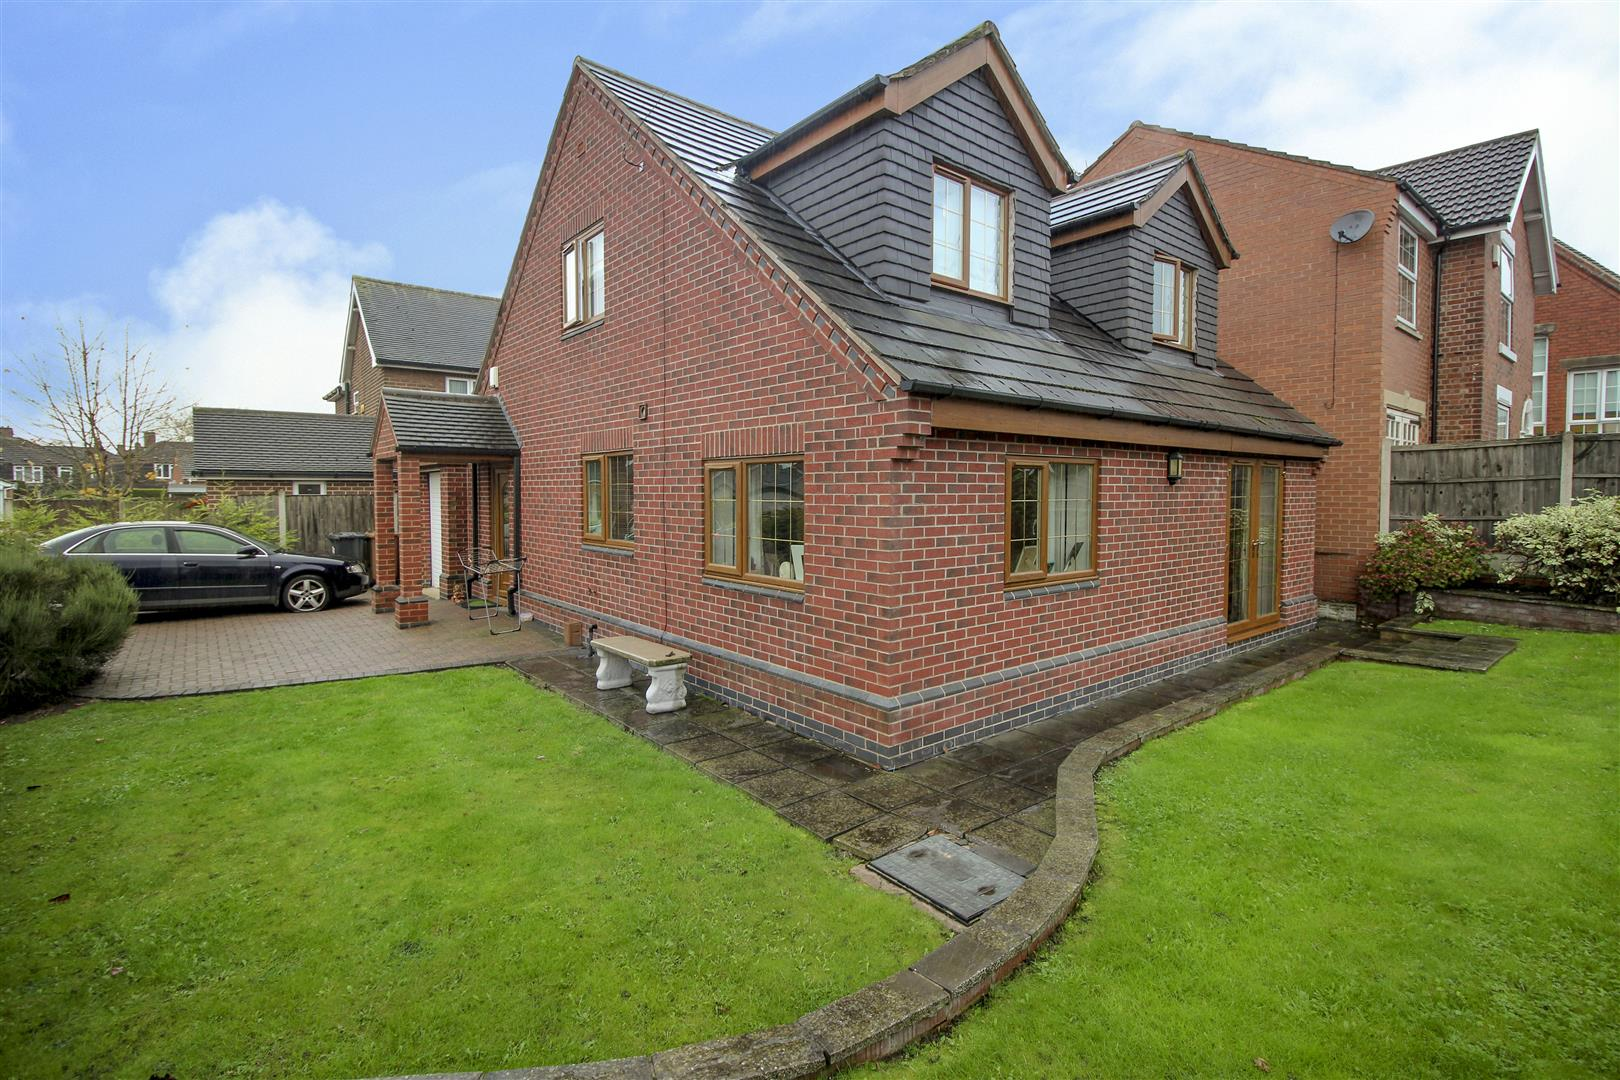 3 Bedrooms Detached House for sale in Barker Close, Stanley Common